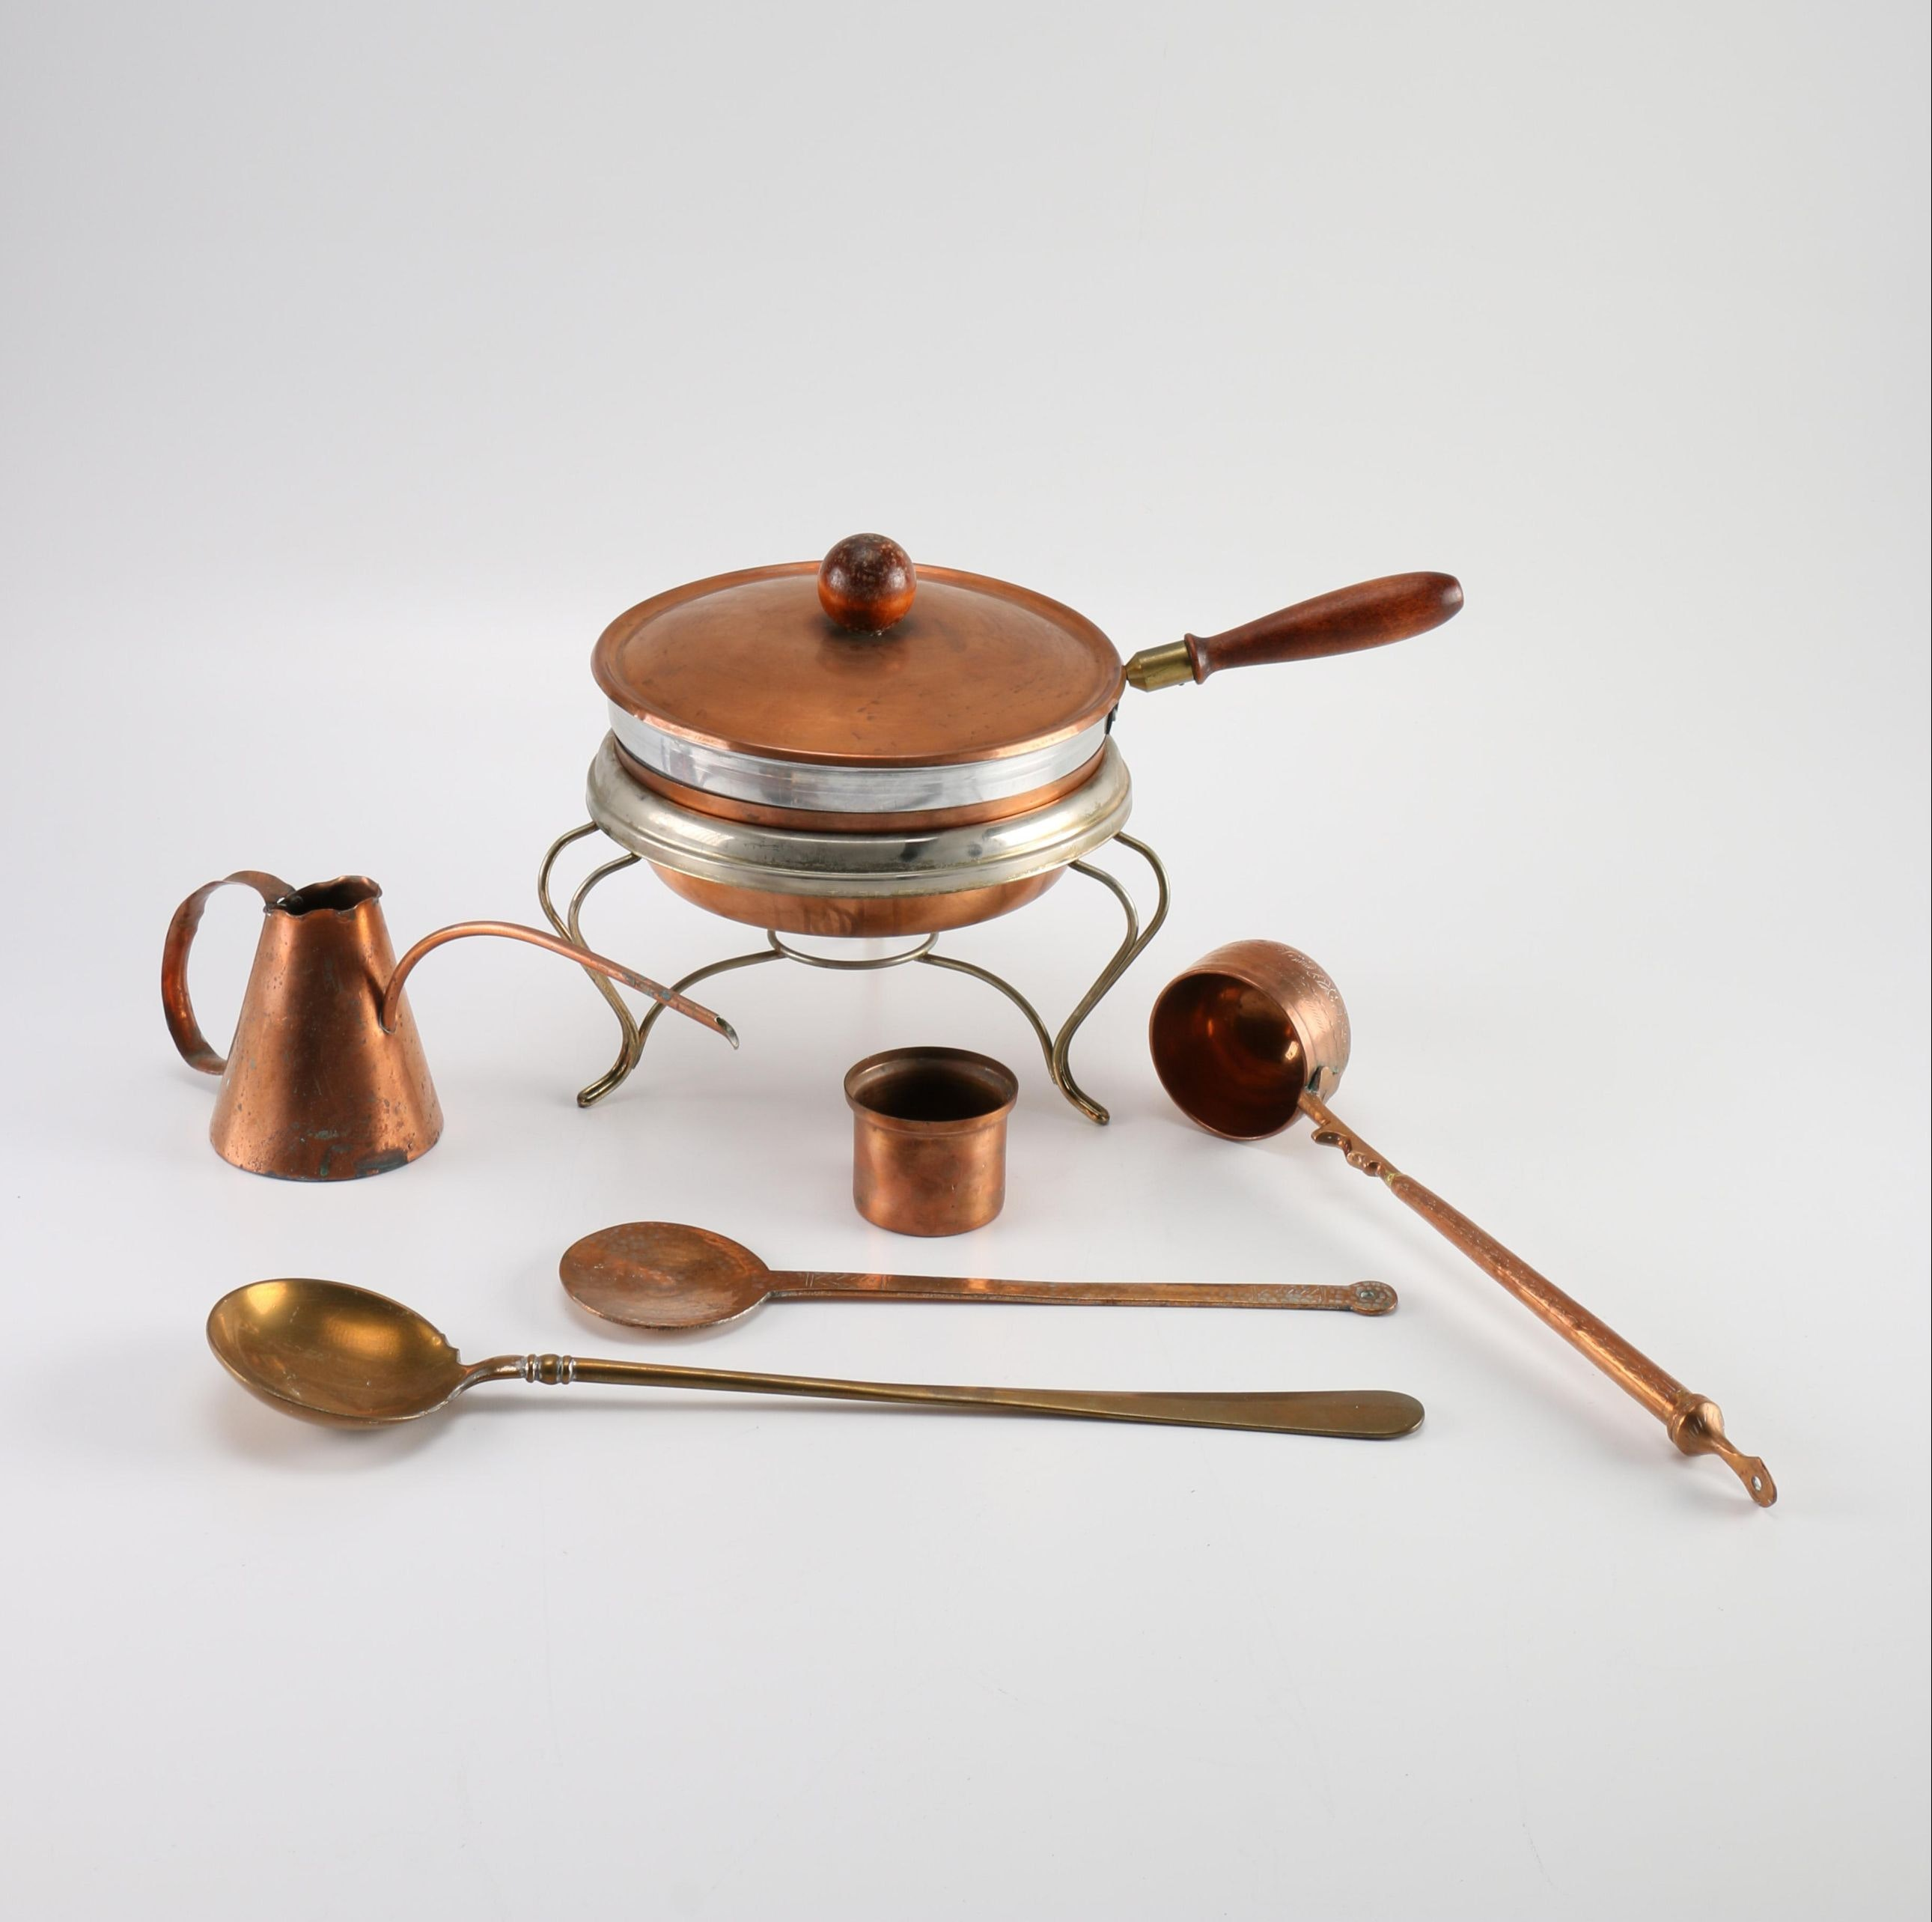 Copper Chafing Dish and More